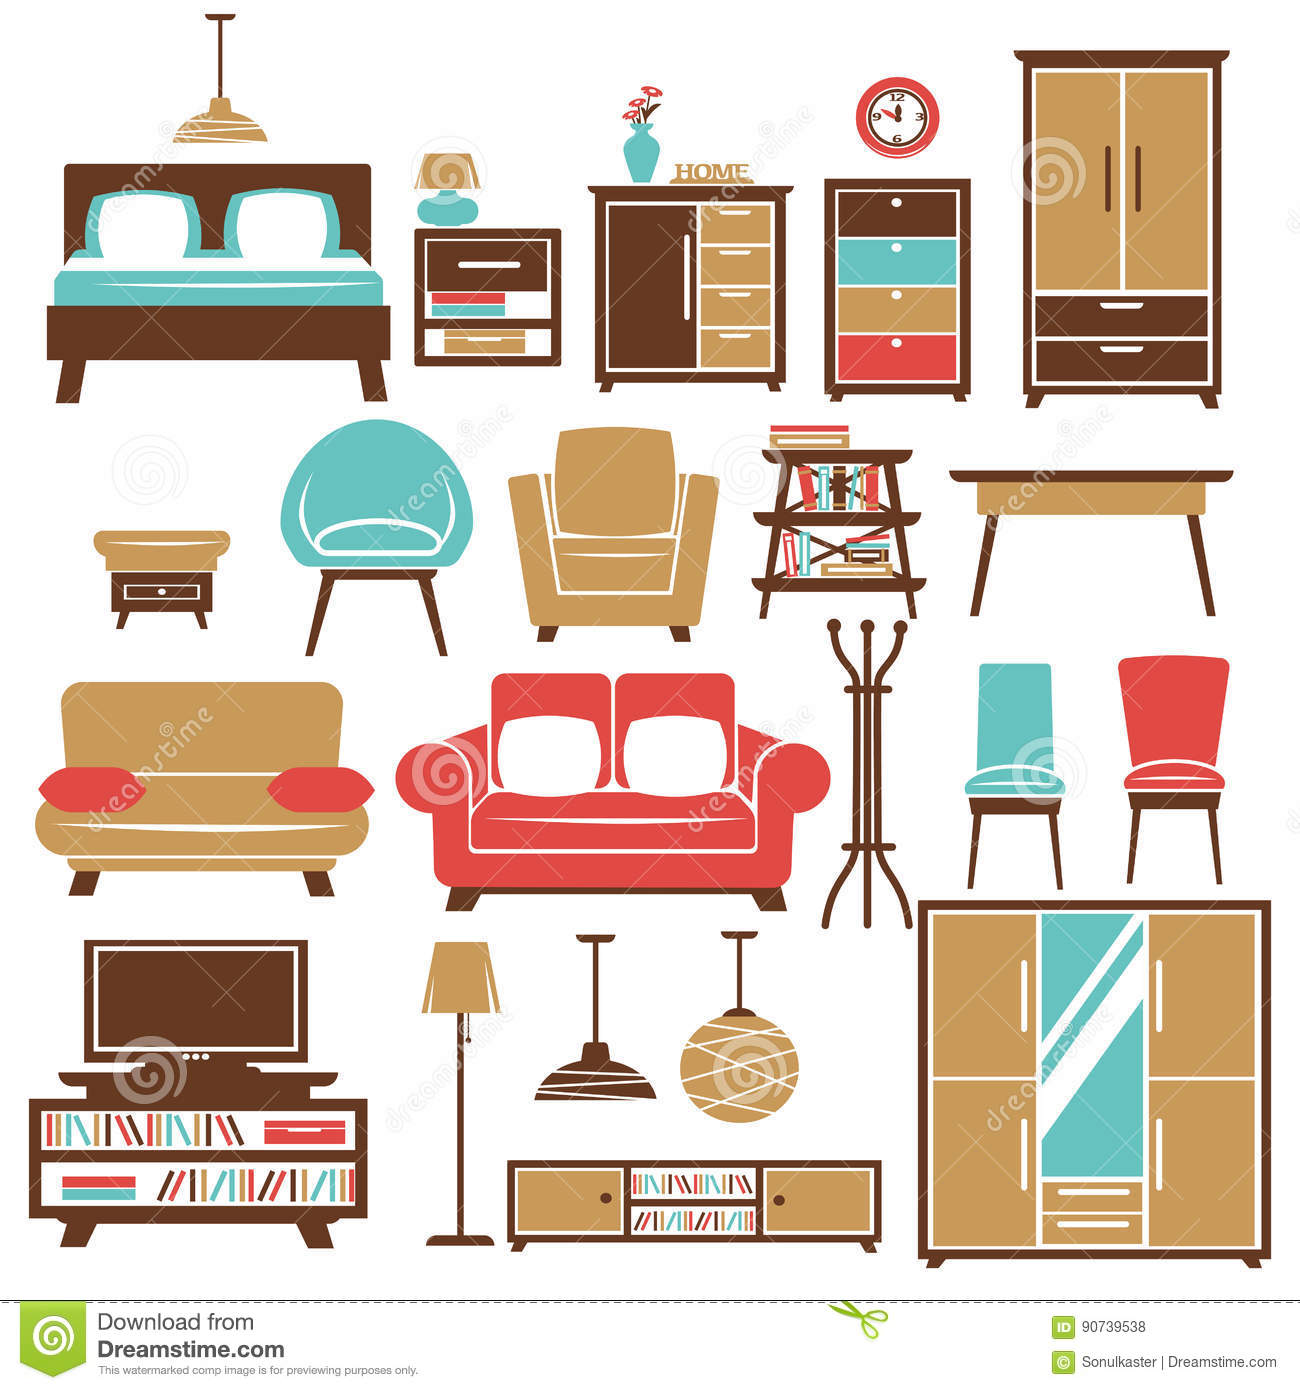 Home Furniture And Room Interior Accessories Vector Flat